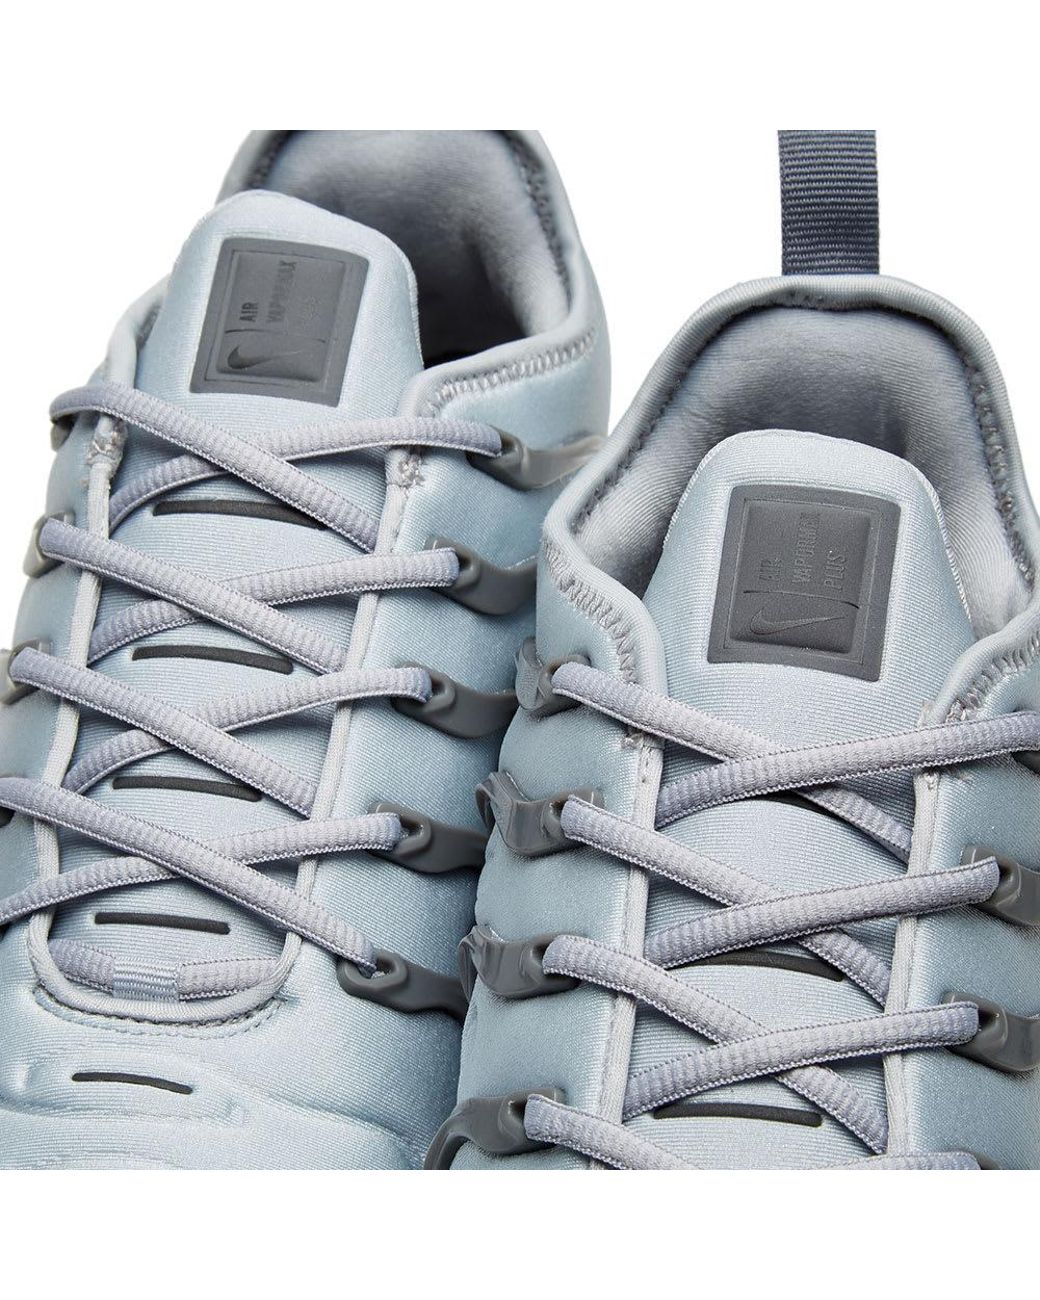 7ea90e4a25f Lyst - Nike Air Vapormax Plus Trainers In Dark Grey in Gray for Men - Save  7%